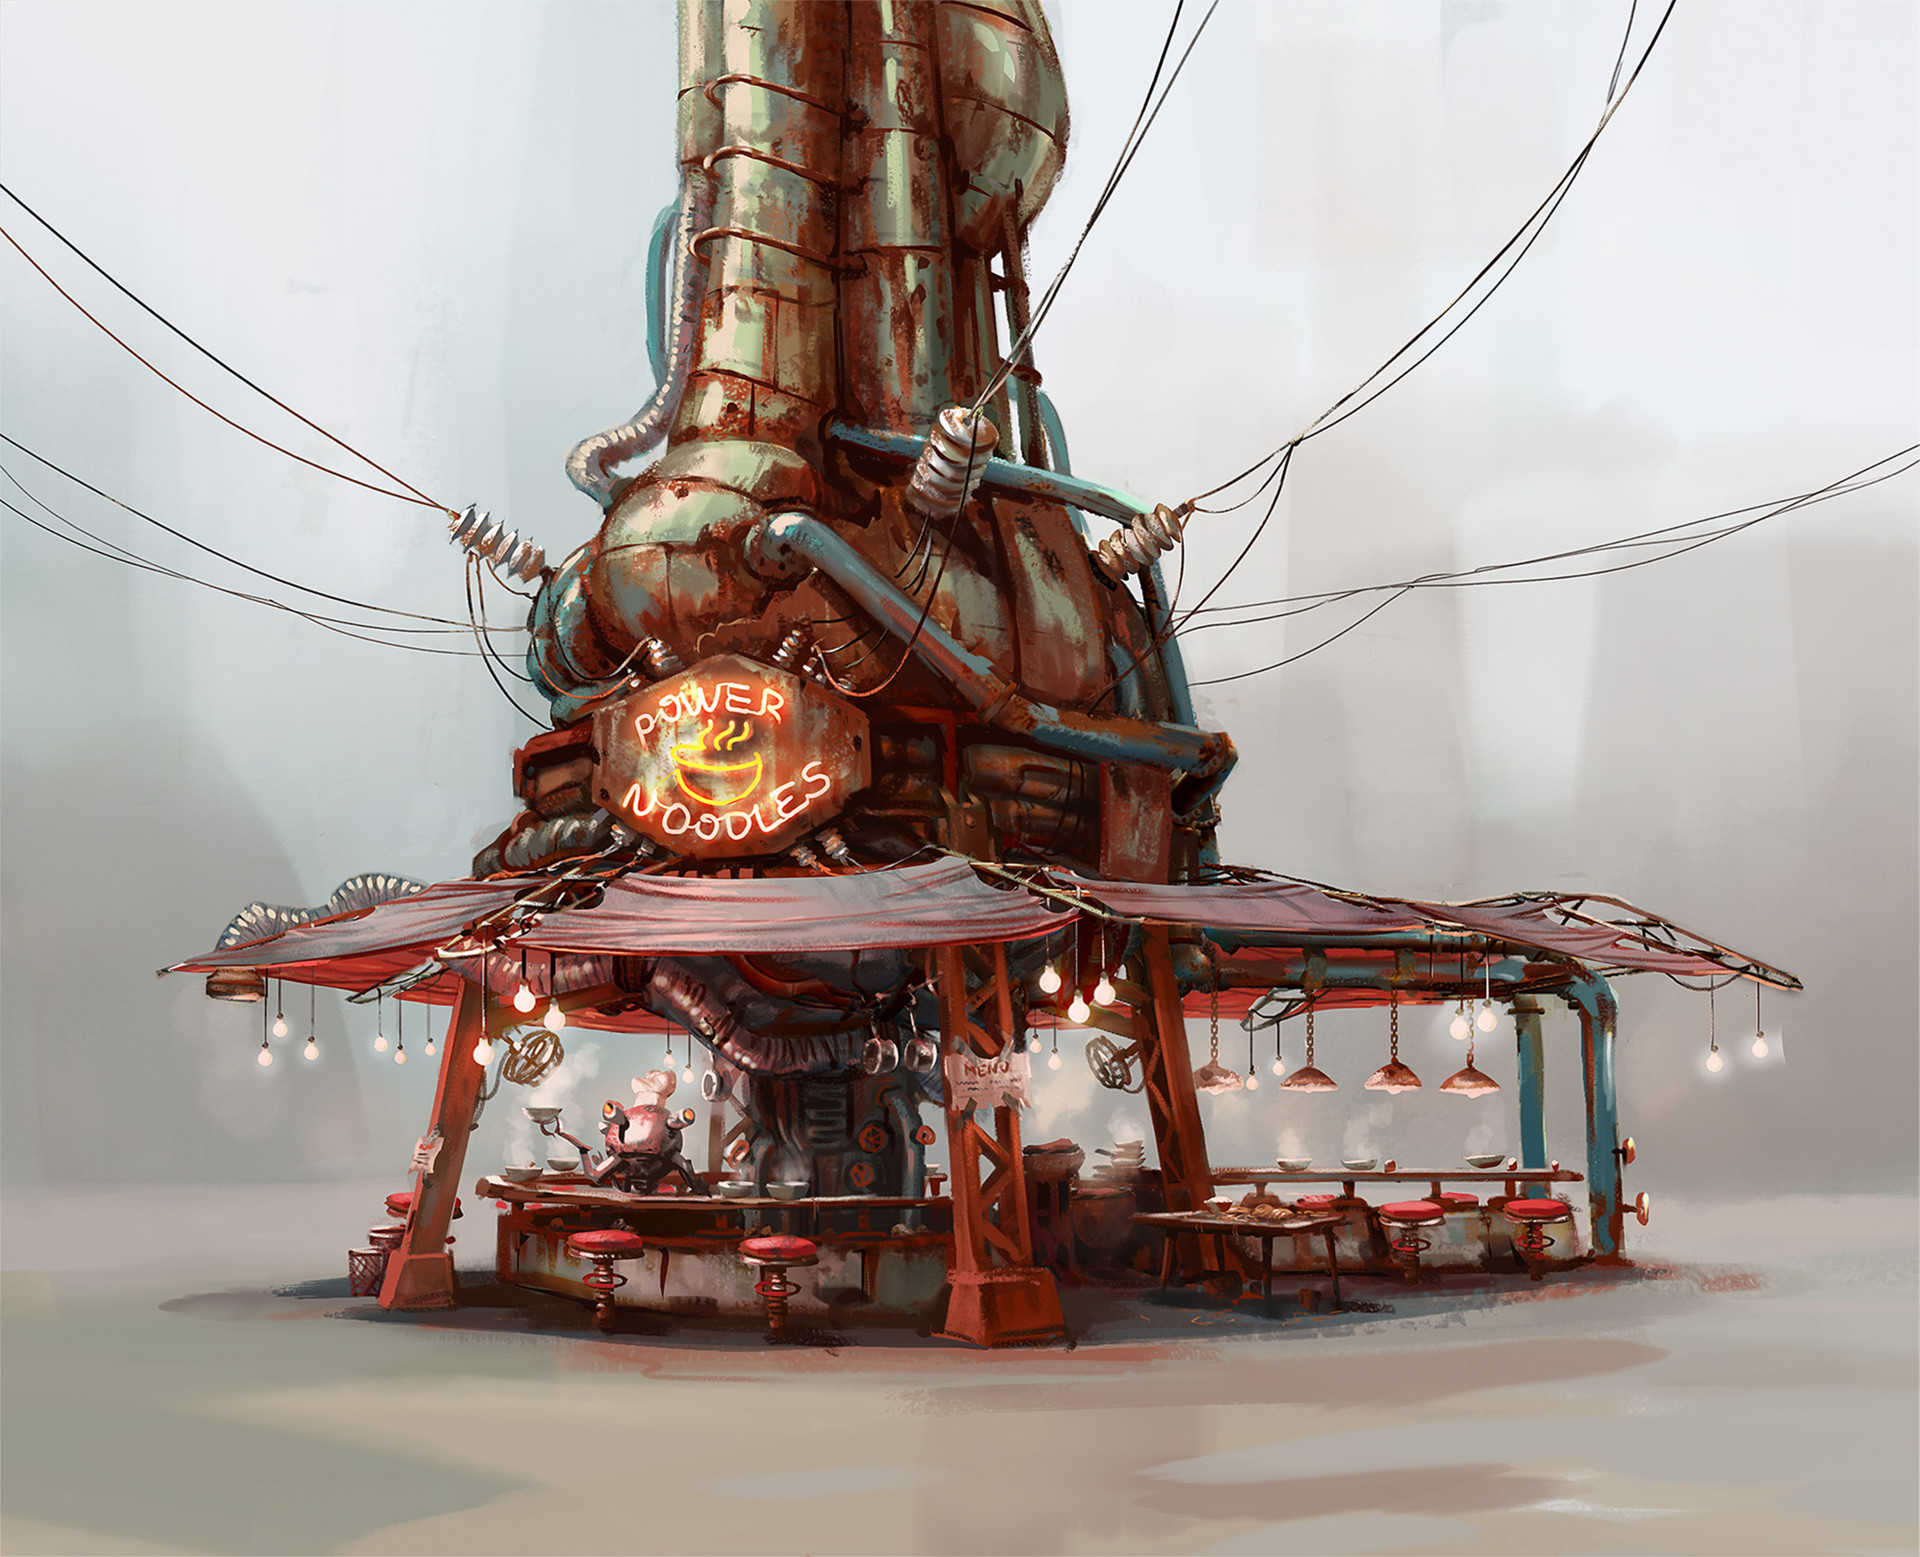 Concept for the Noodle house in Fallout 4 for Bethesda Game Studios.